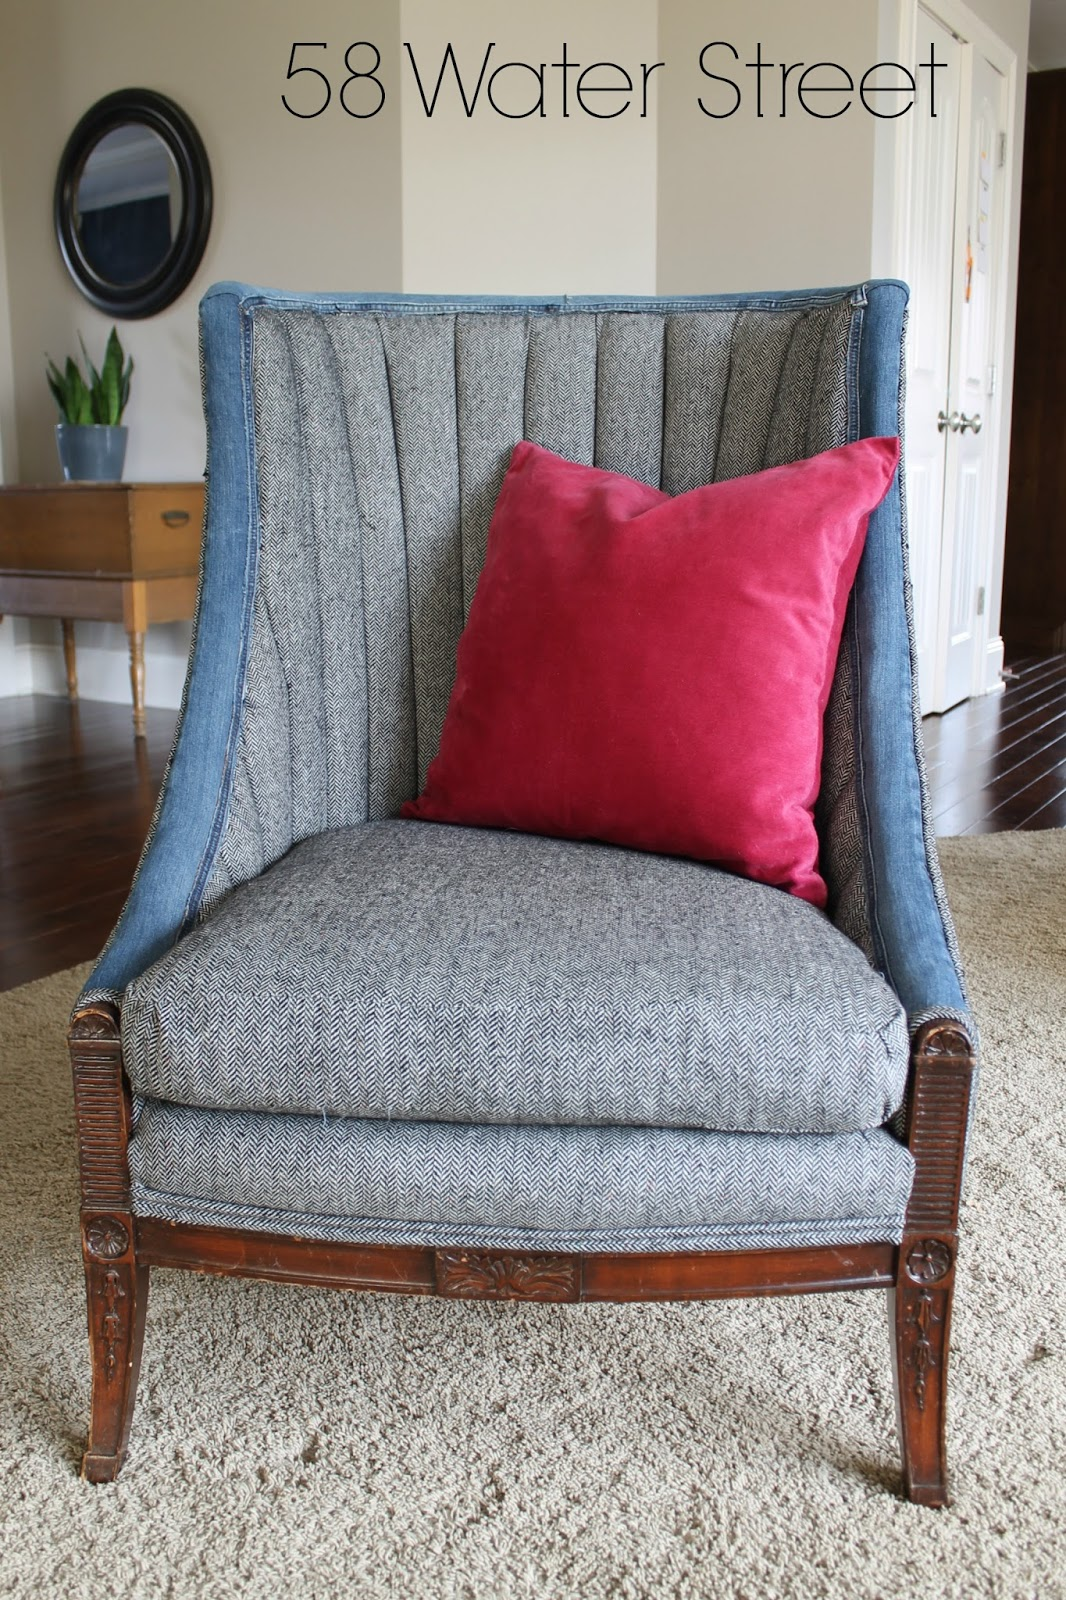 Channel Back Chair, Upholstery, Diy, Preppy, Furniture Makeover